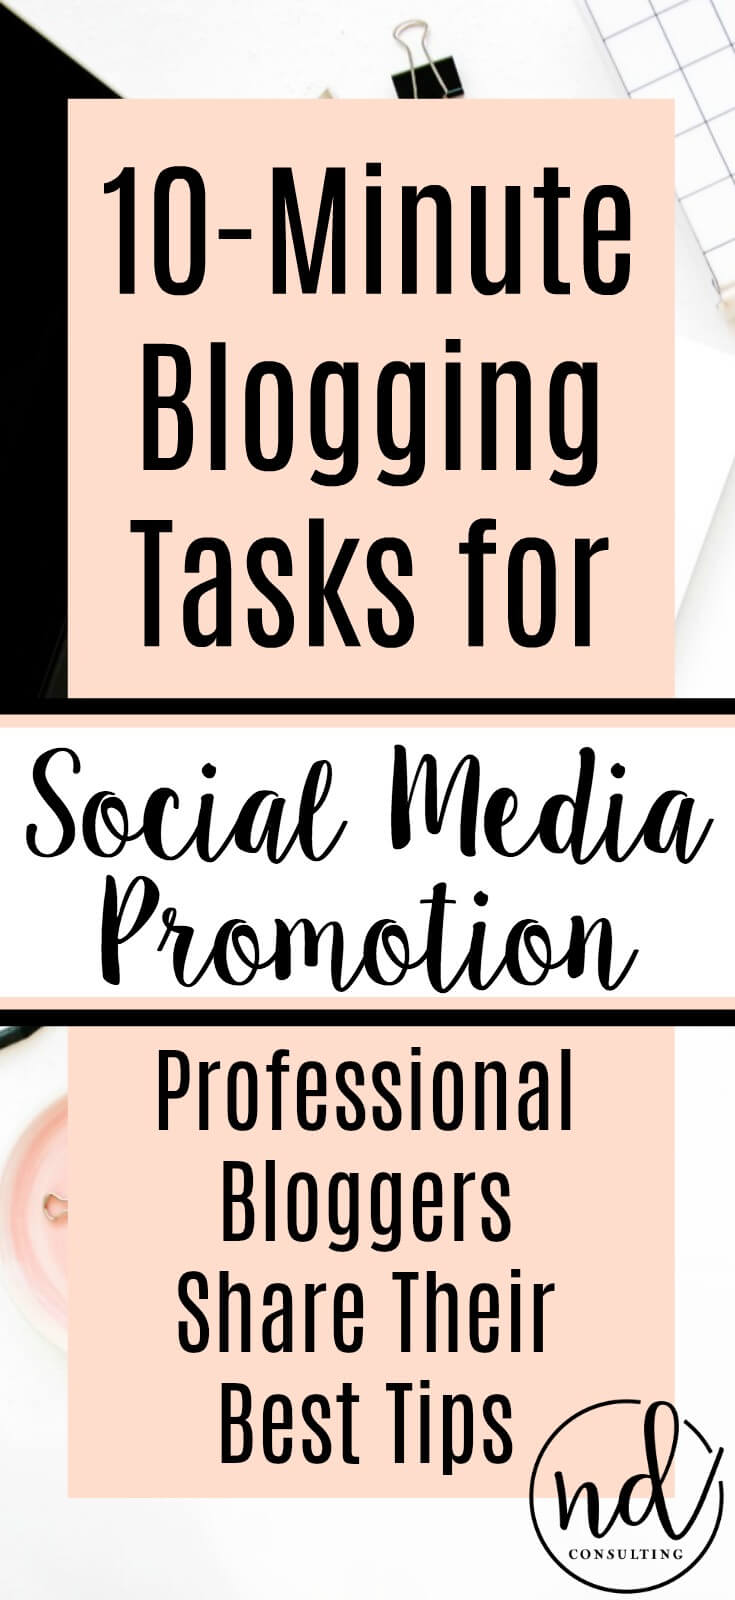 10 Minute Blogging Quick Tips for Social Media Promotion